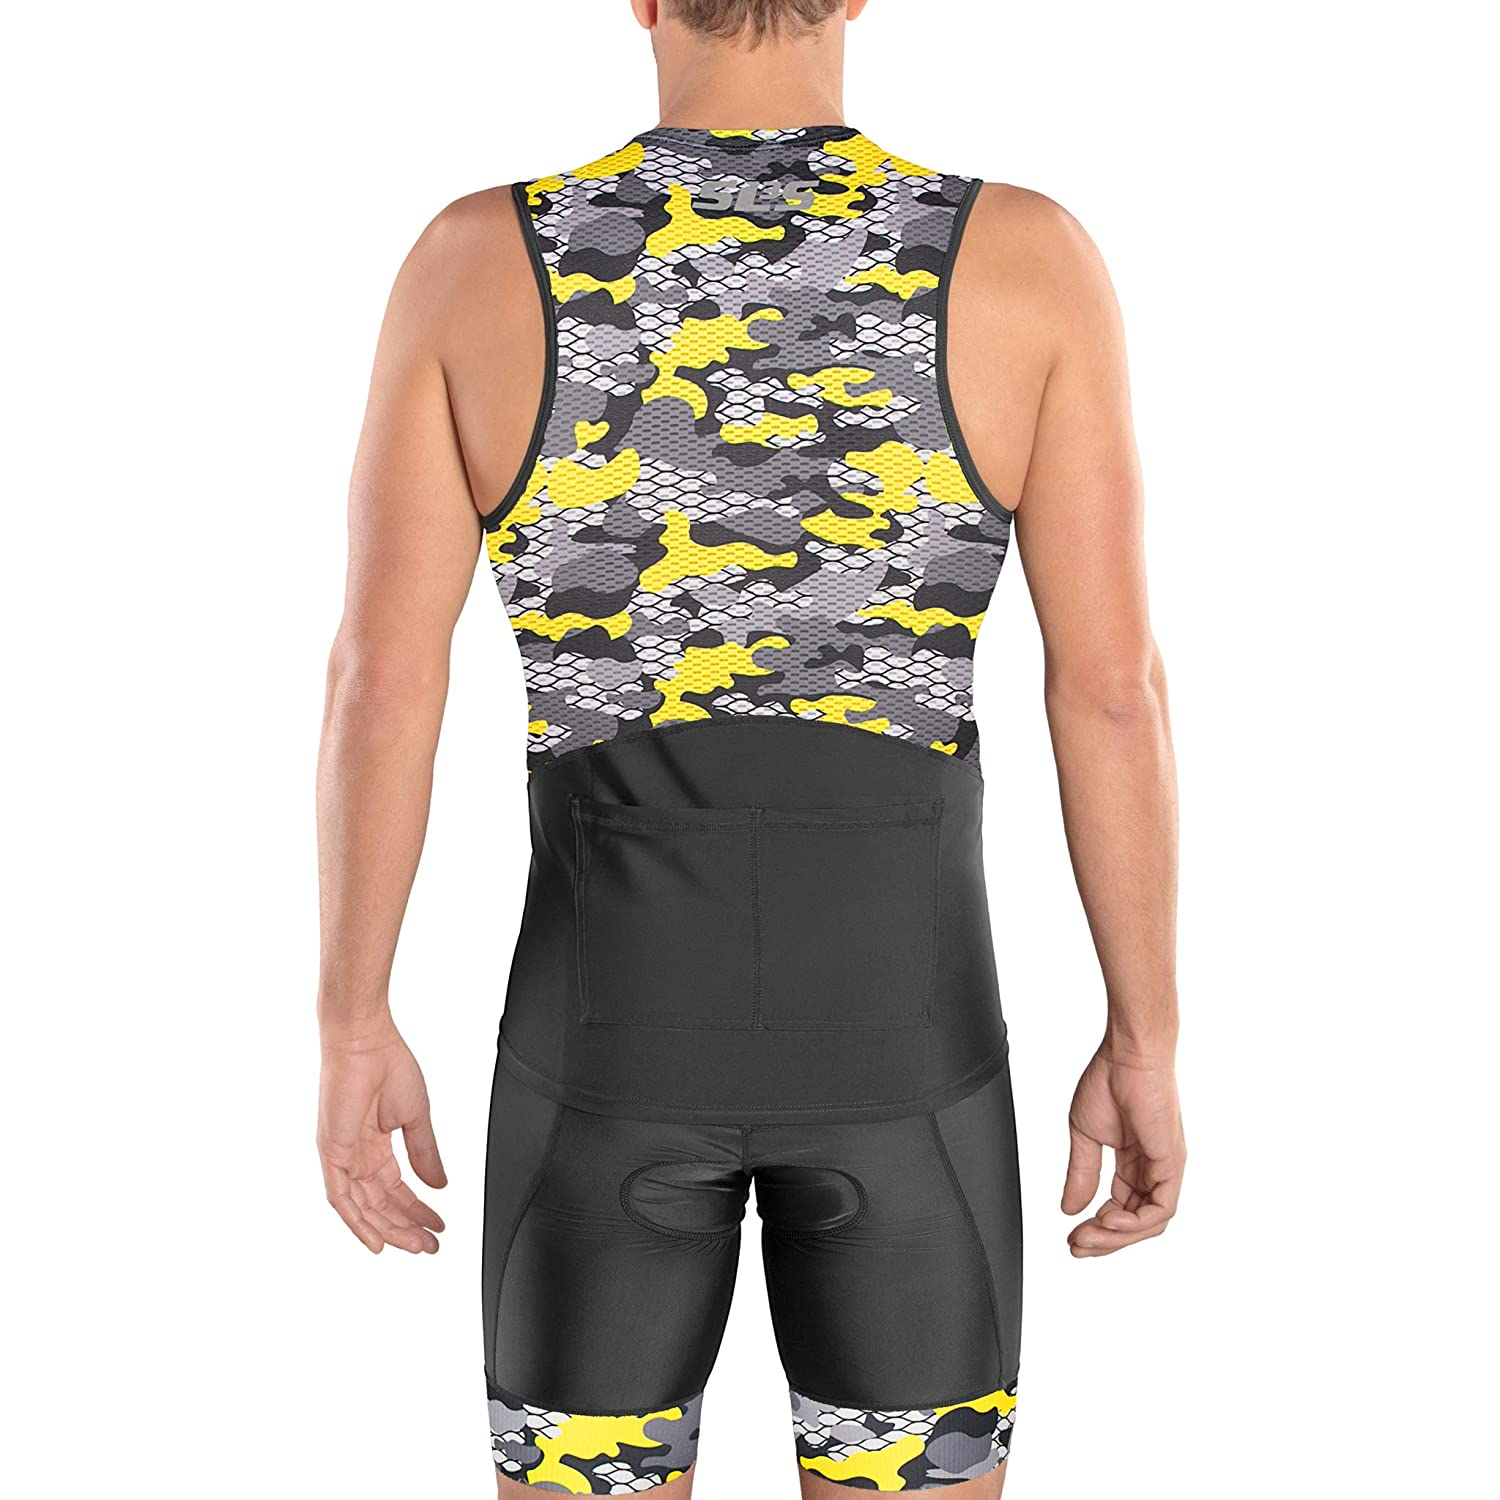 Jersey 2 Pockets Singlet Zipper Designed by Athletes for Athletes SLS3 Tri Top Men FRT Mens Triathlon Top Tight Fit Shirt